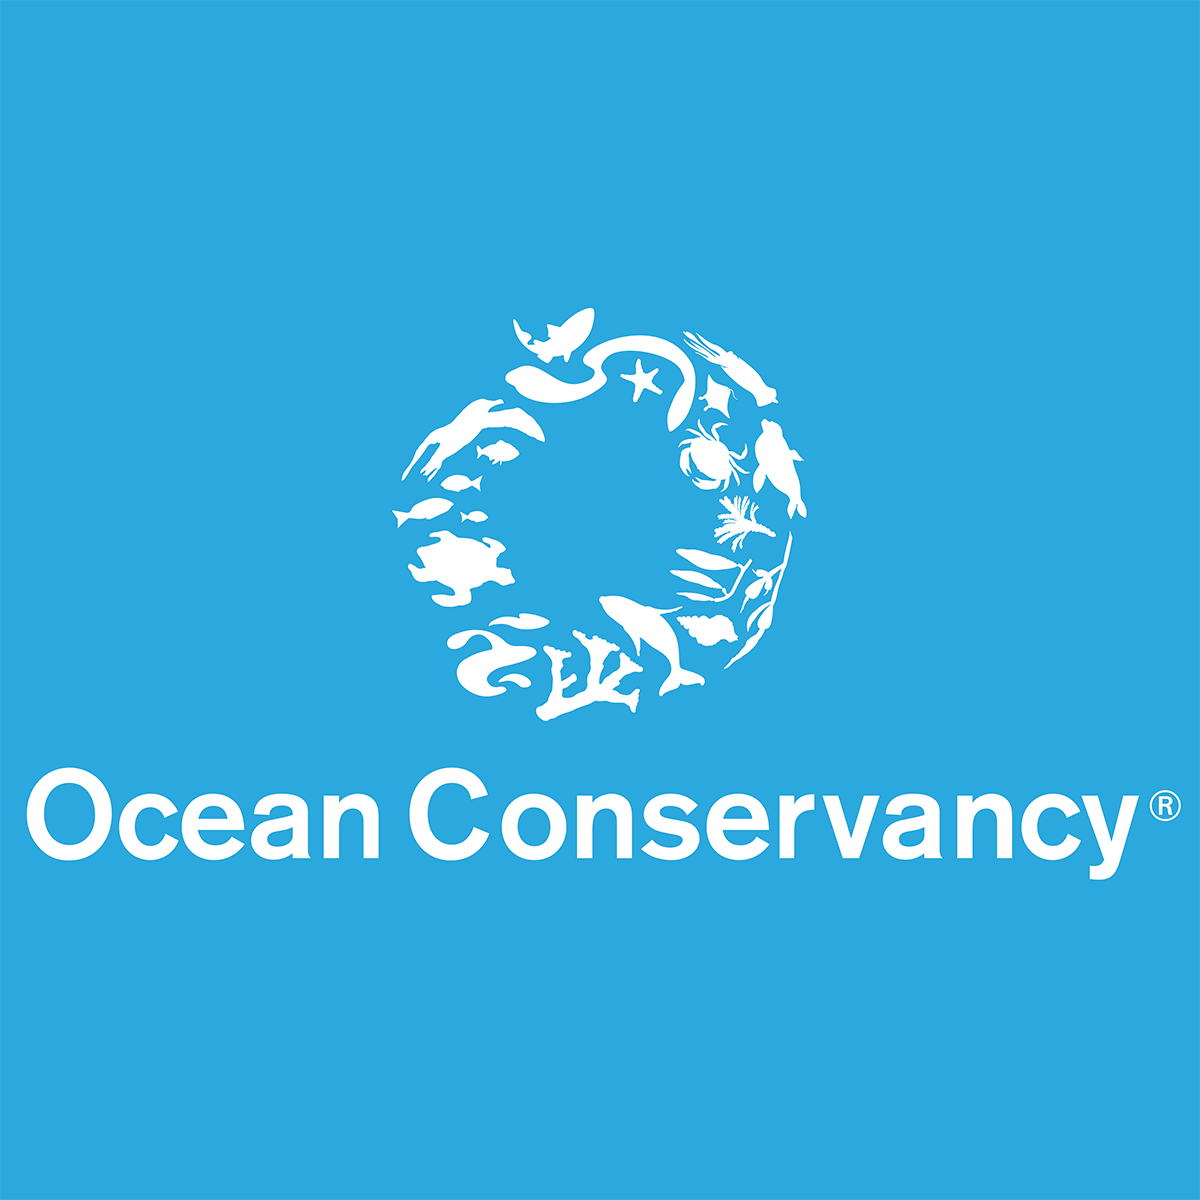 Biofriendly proudly supports Ocean Conservancy